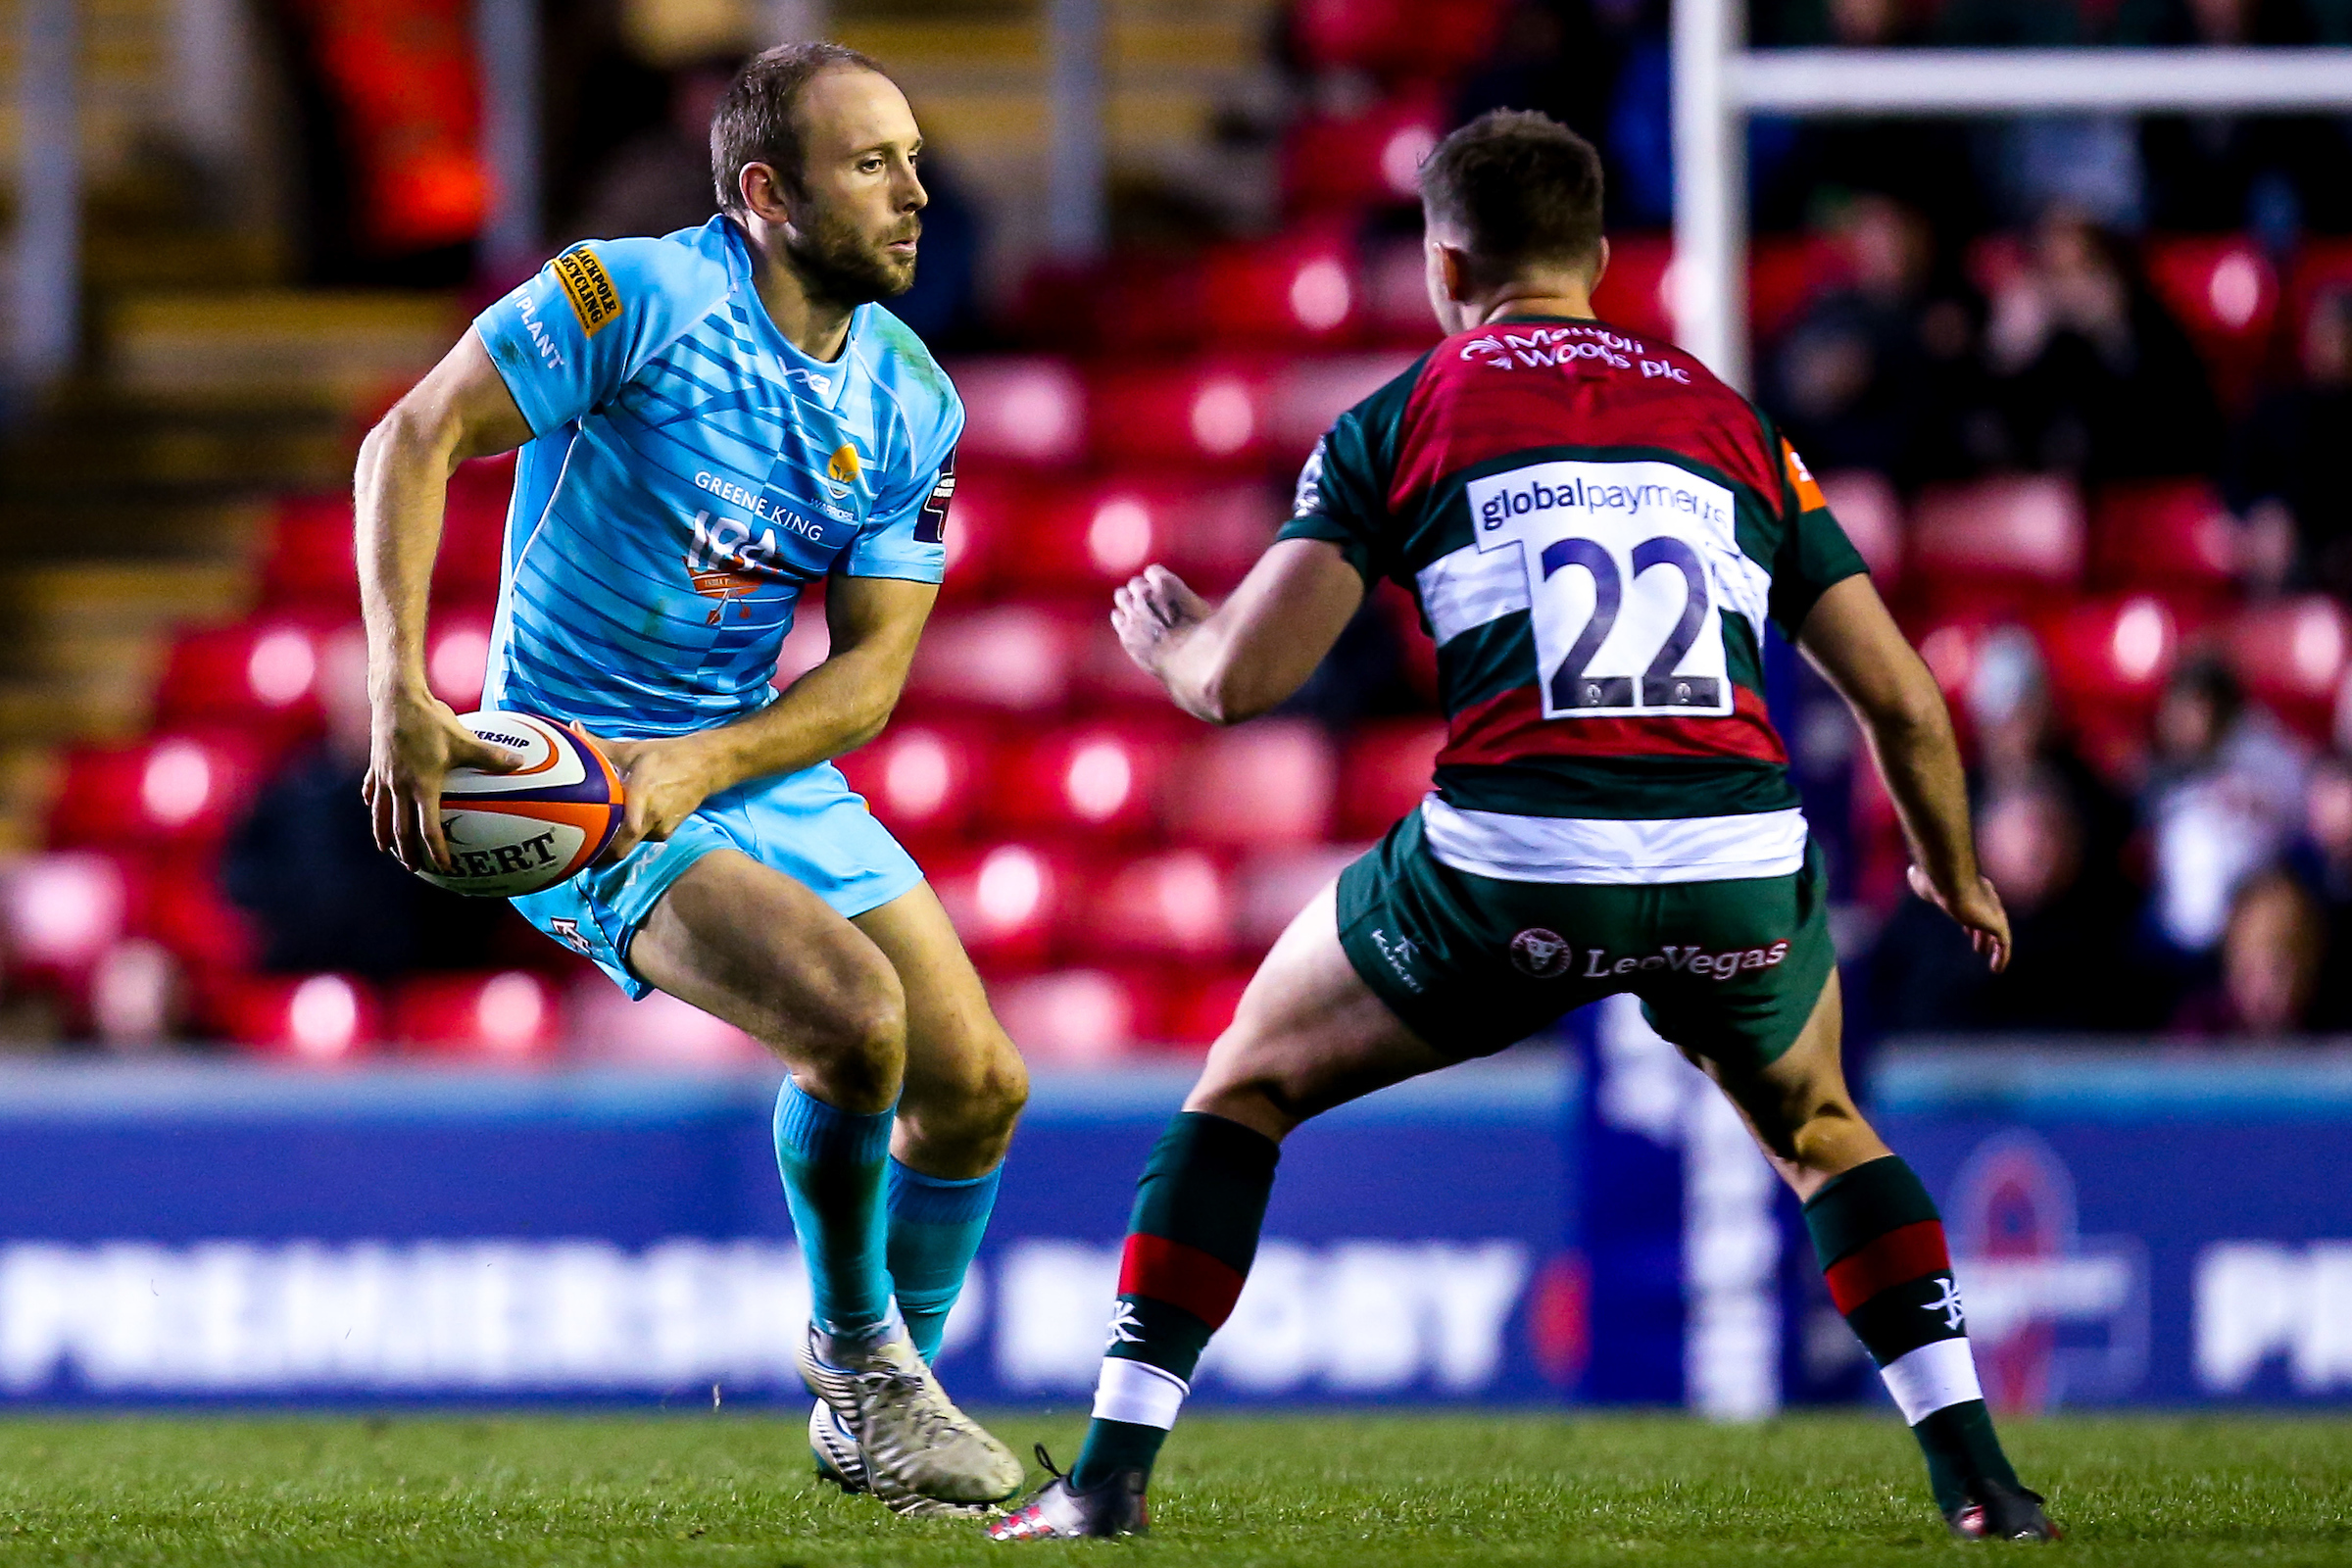 Chris Pennell said Warriors played more heads-up rugby at Saracens. Picture: ROBBIE STEPHENSON/JMP